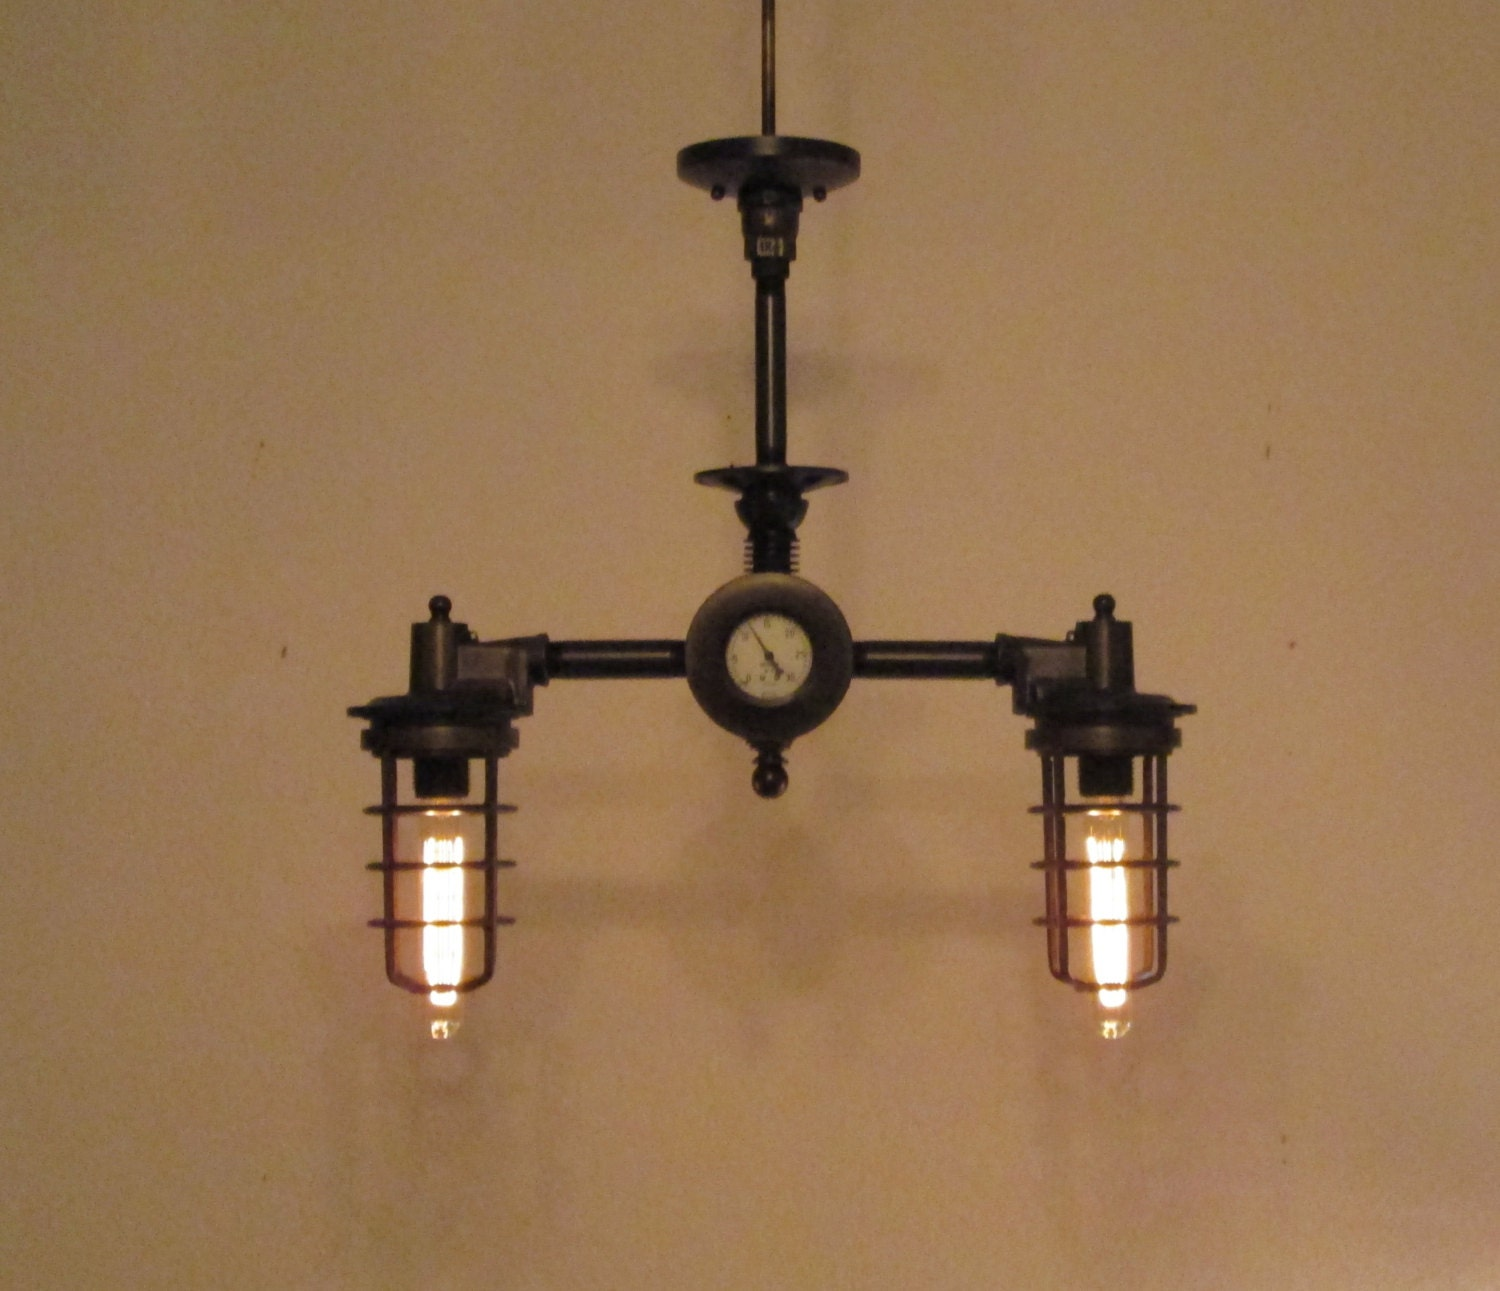 Vintage And Industrial Lighting From Etsy: Steampunk Light Vintage Industrial Chandelier By